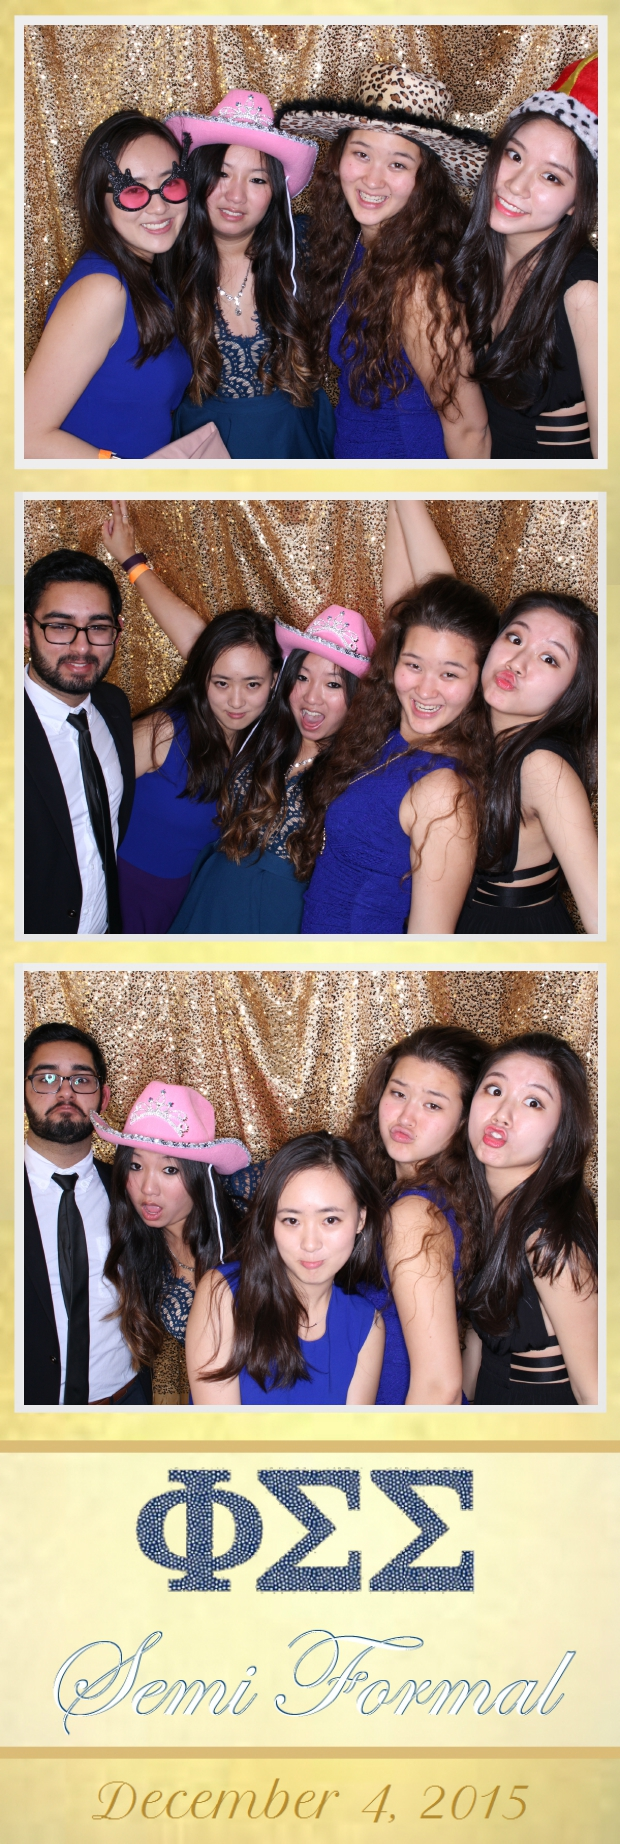 Guest House Events Photo Booth Phi Sigma Sigma Semi Formal (61).jpg